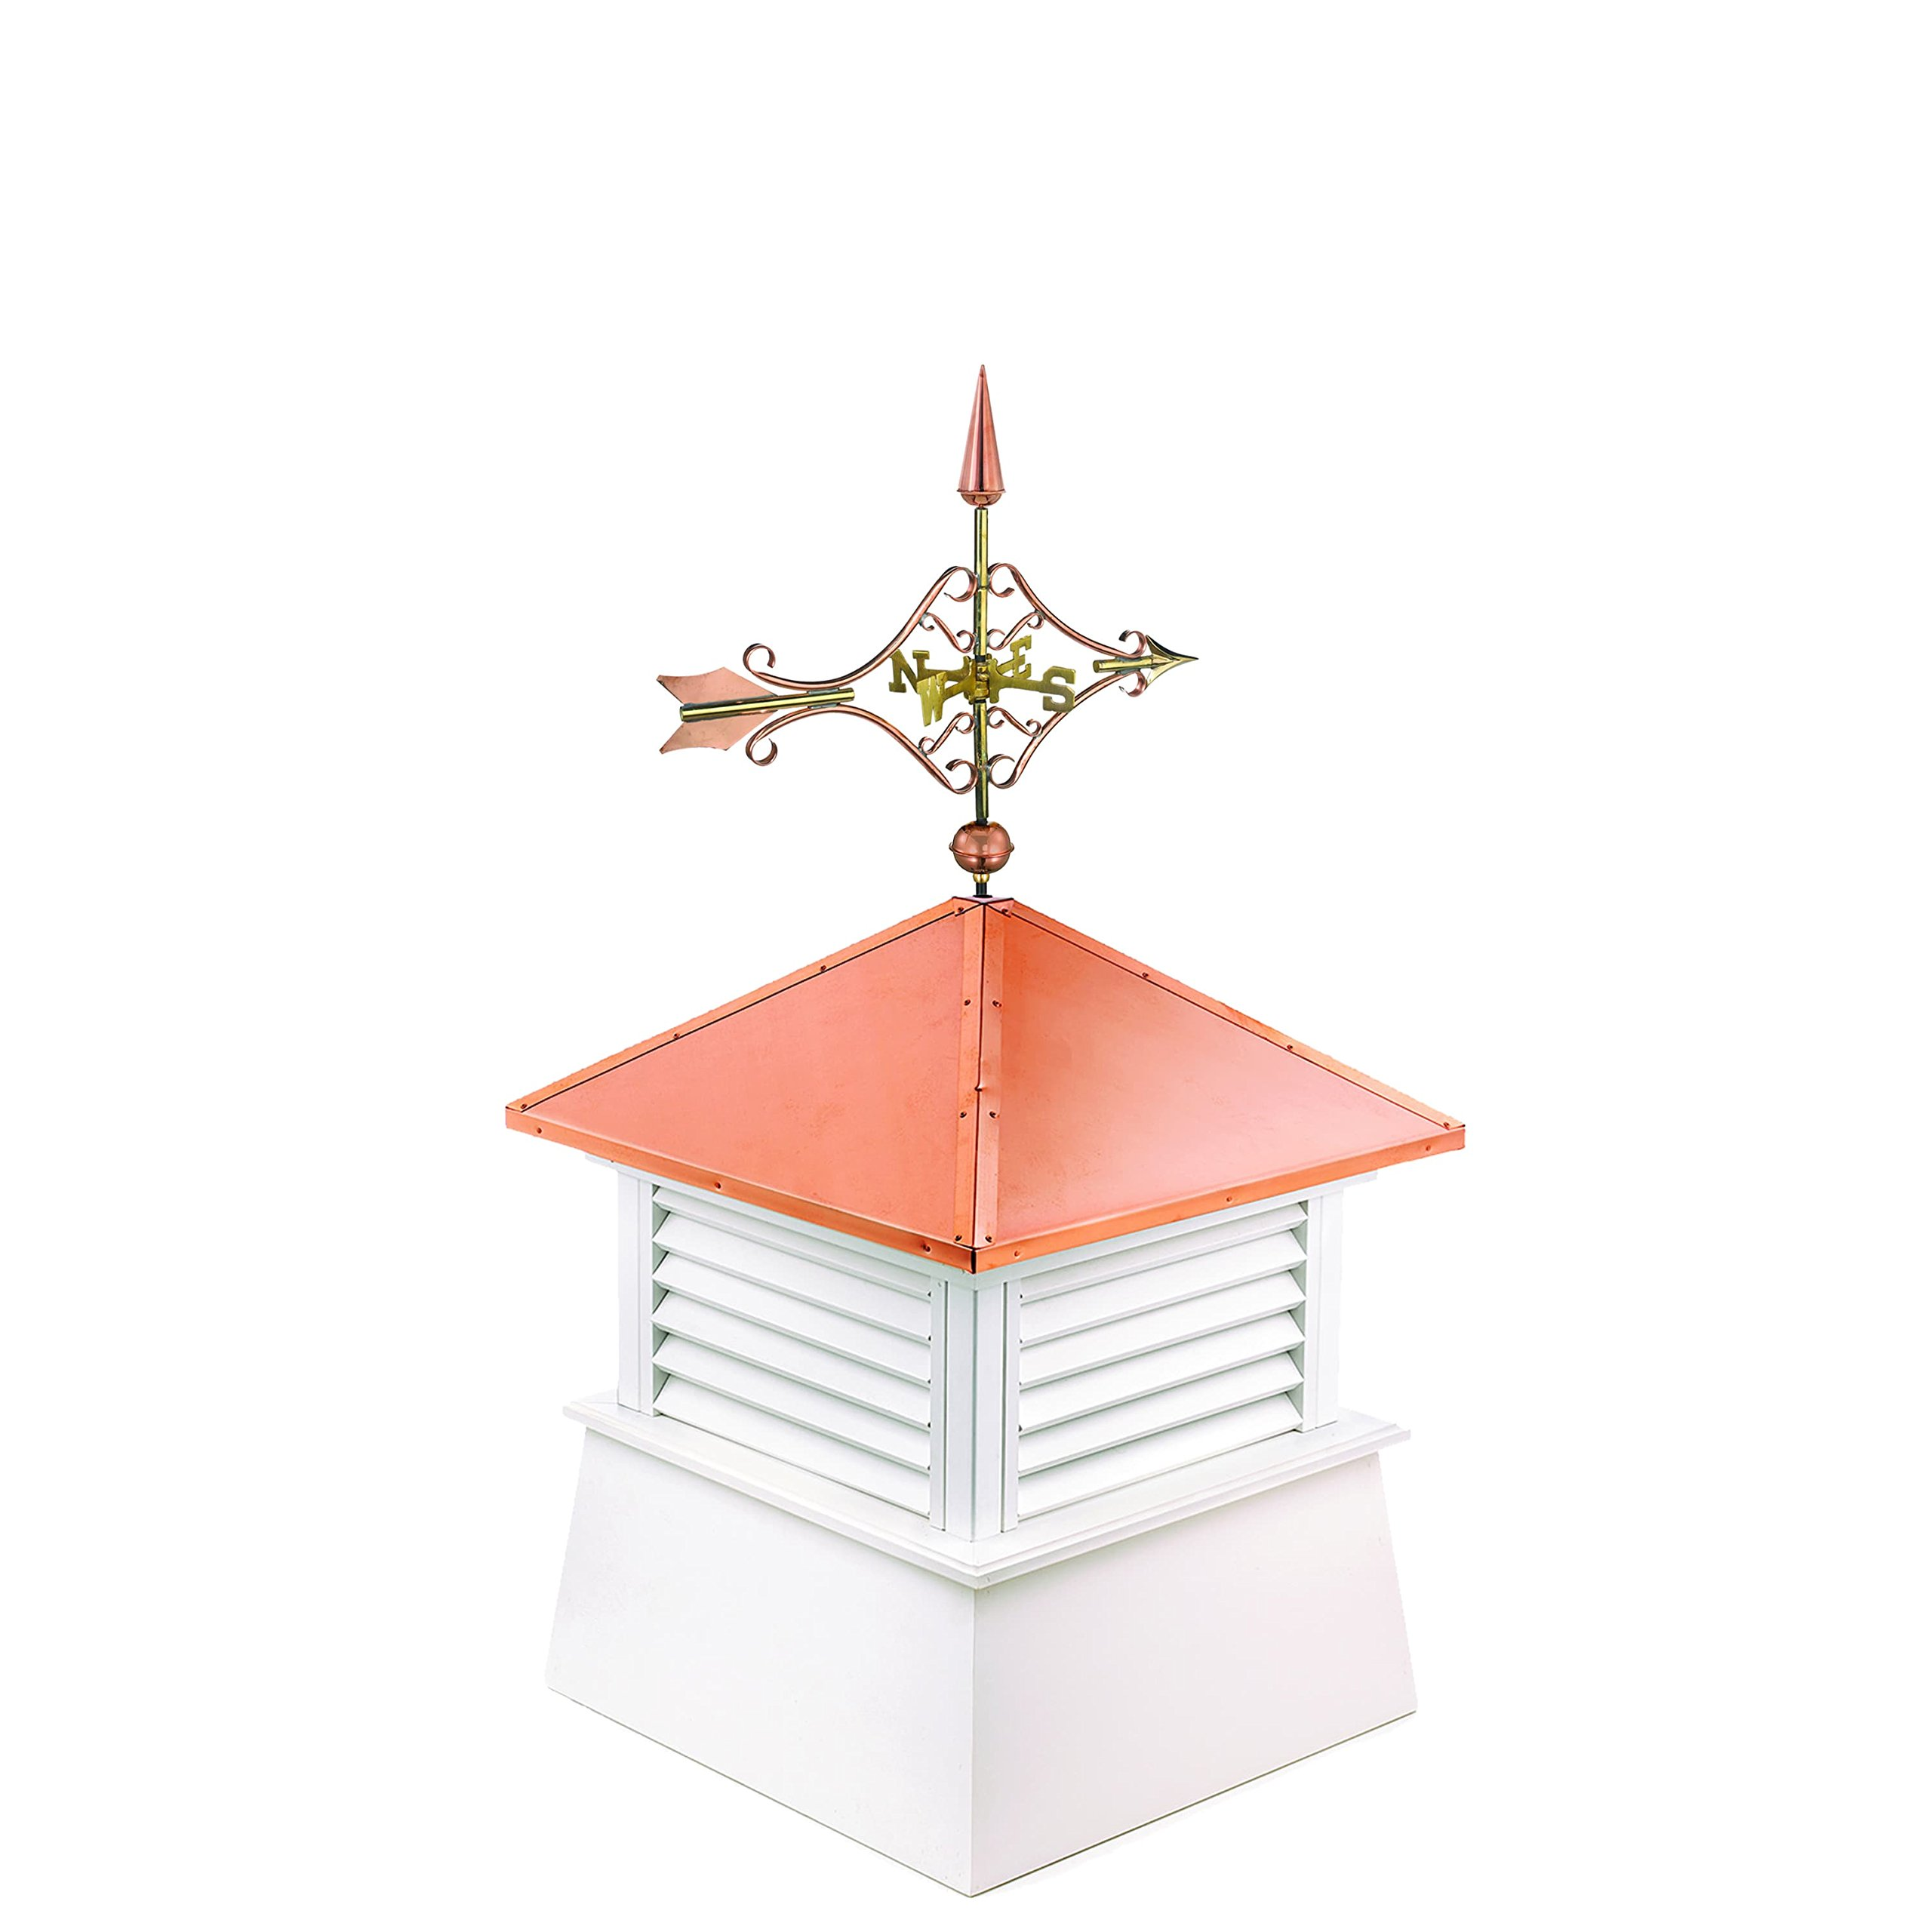 """Manchester Vinyl Cupola with Victorian Arrow Weathervane, Perfect Size for a 1 Car Garage, 26"""" square x 54"""" high, Pure Copper Roof"""